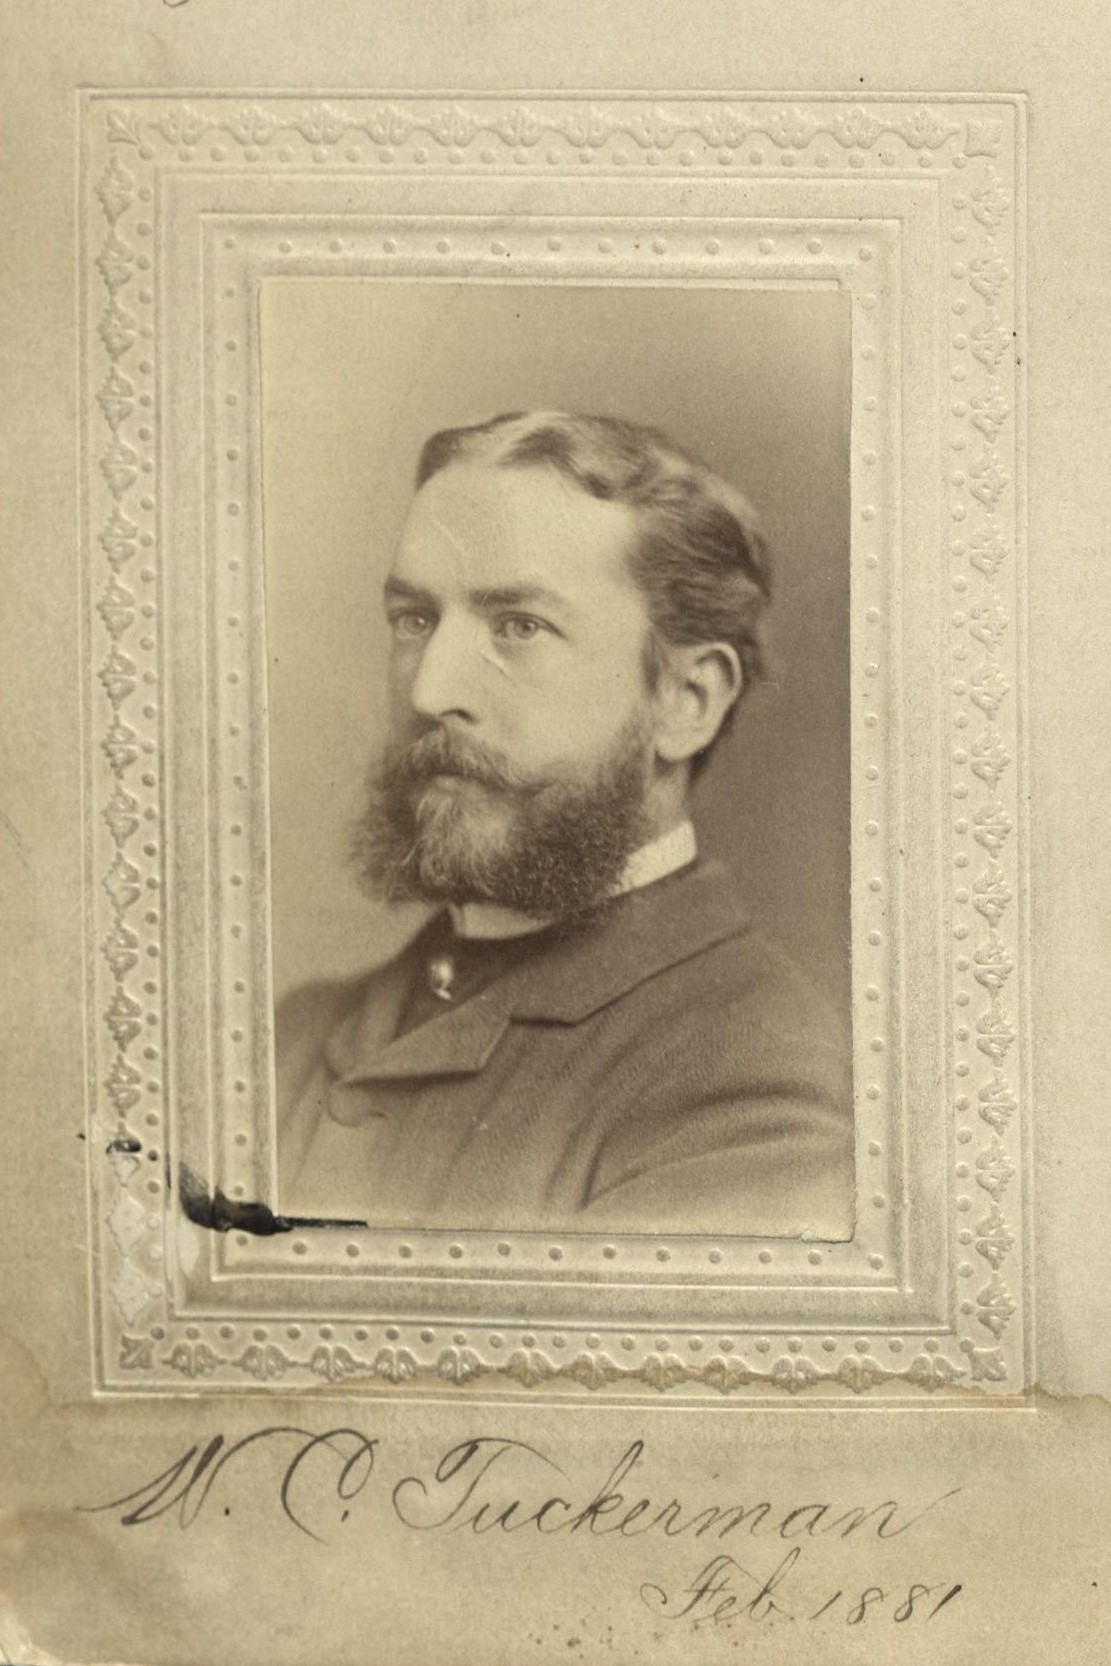 Member portrait of Walter C. Tuckerman